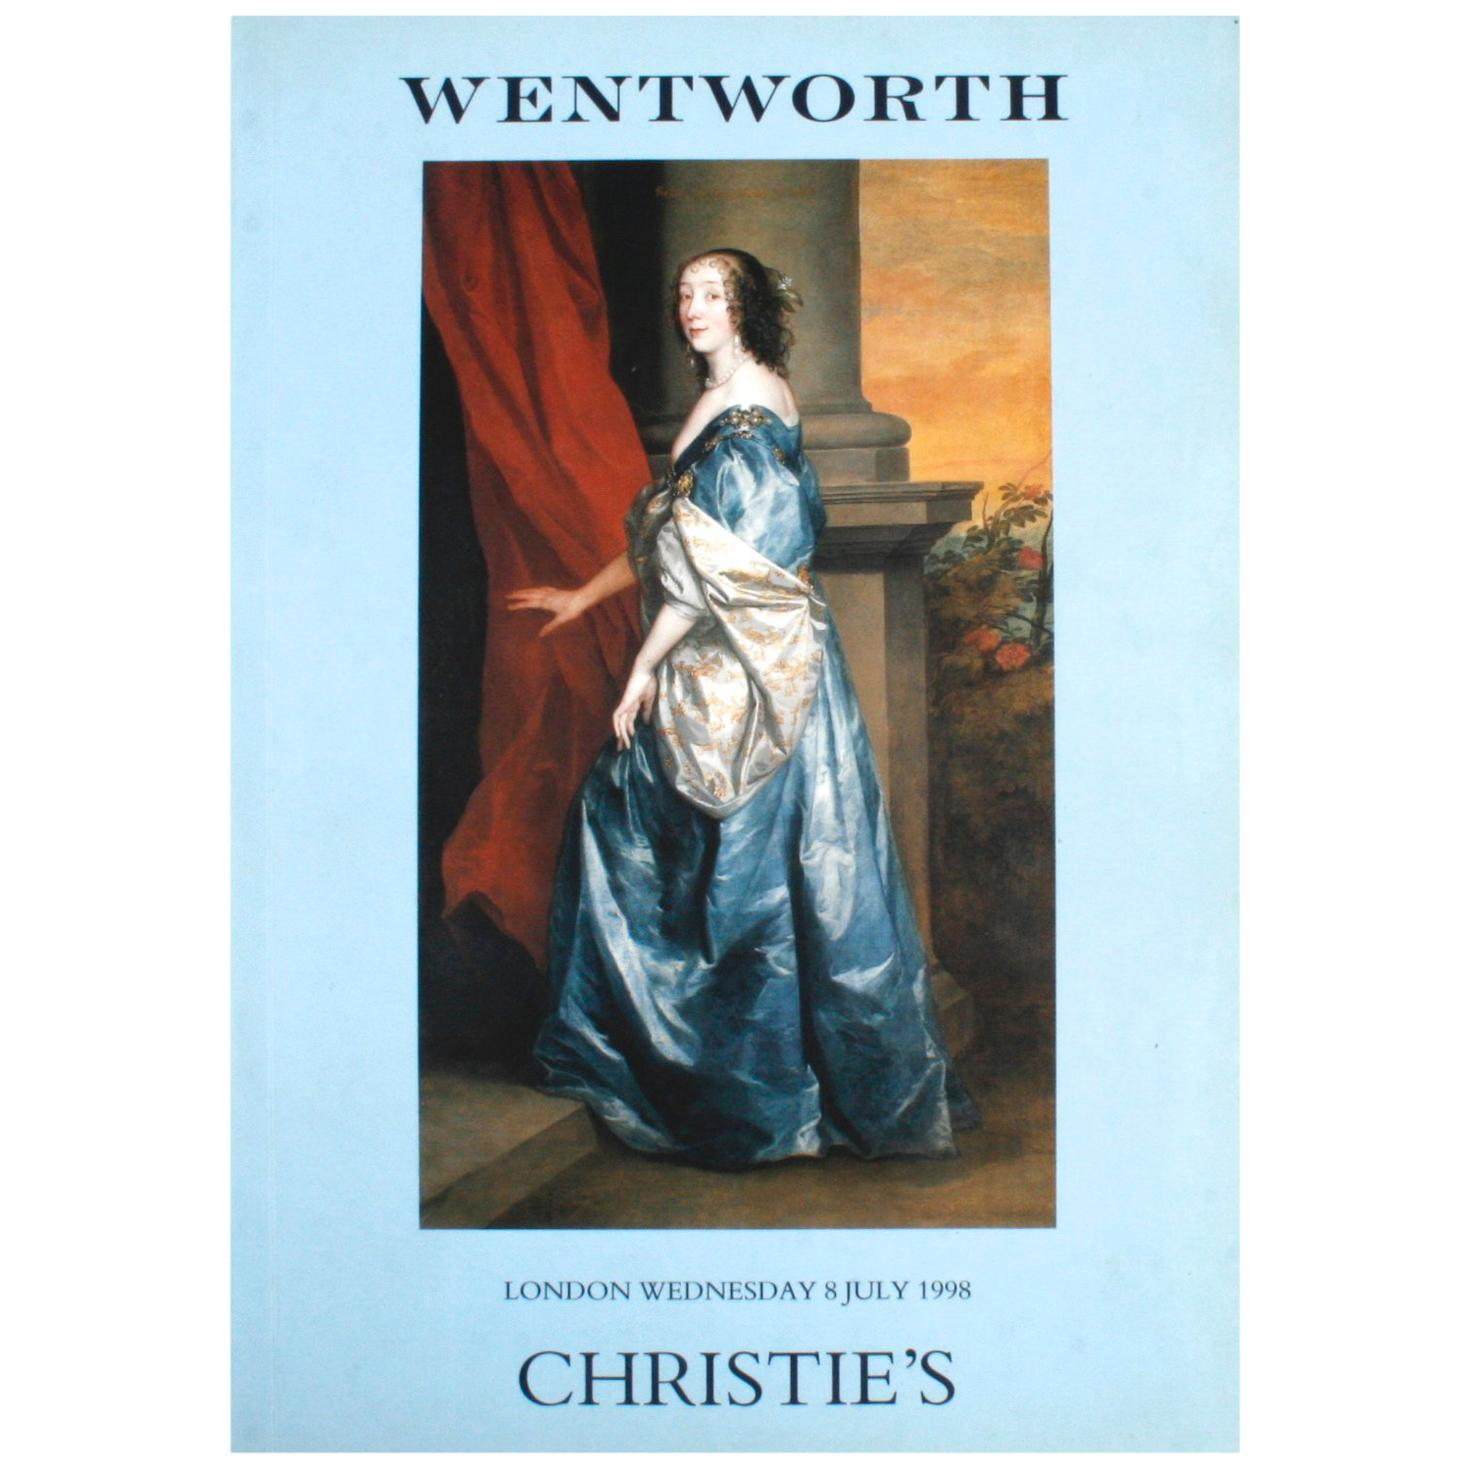 Christie's London, the Wentworth Library